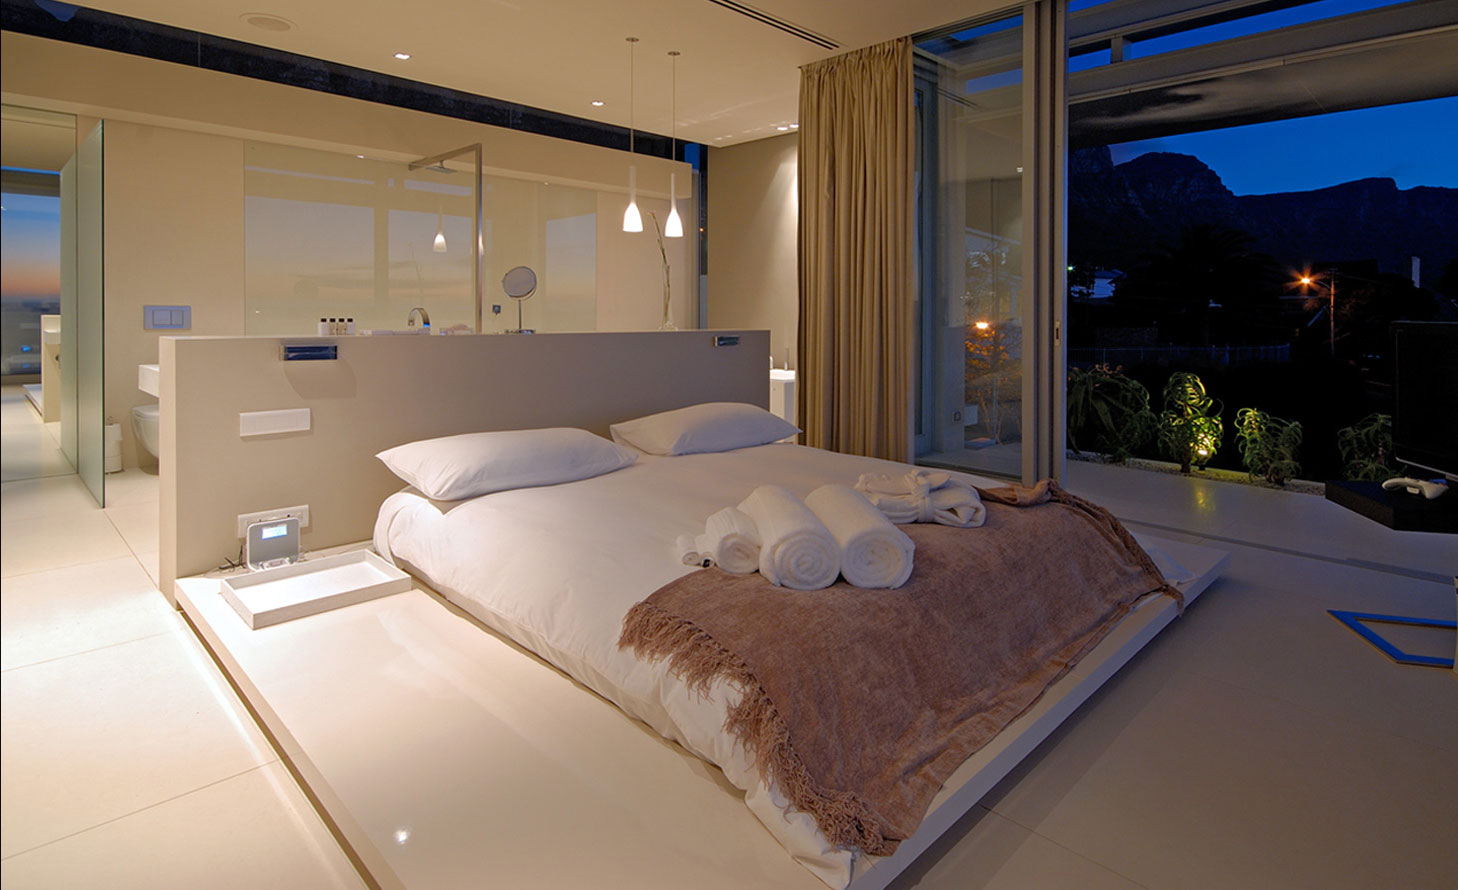 Modern Luxurious Bedrooms Home Design Ideas inside 14 Clever Initiatives of How to Makeover Modern Luxury Bedrooms